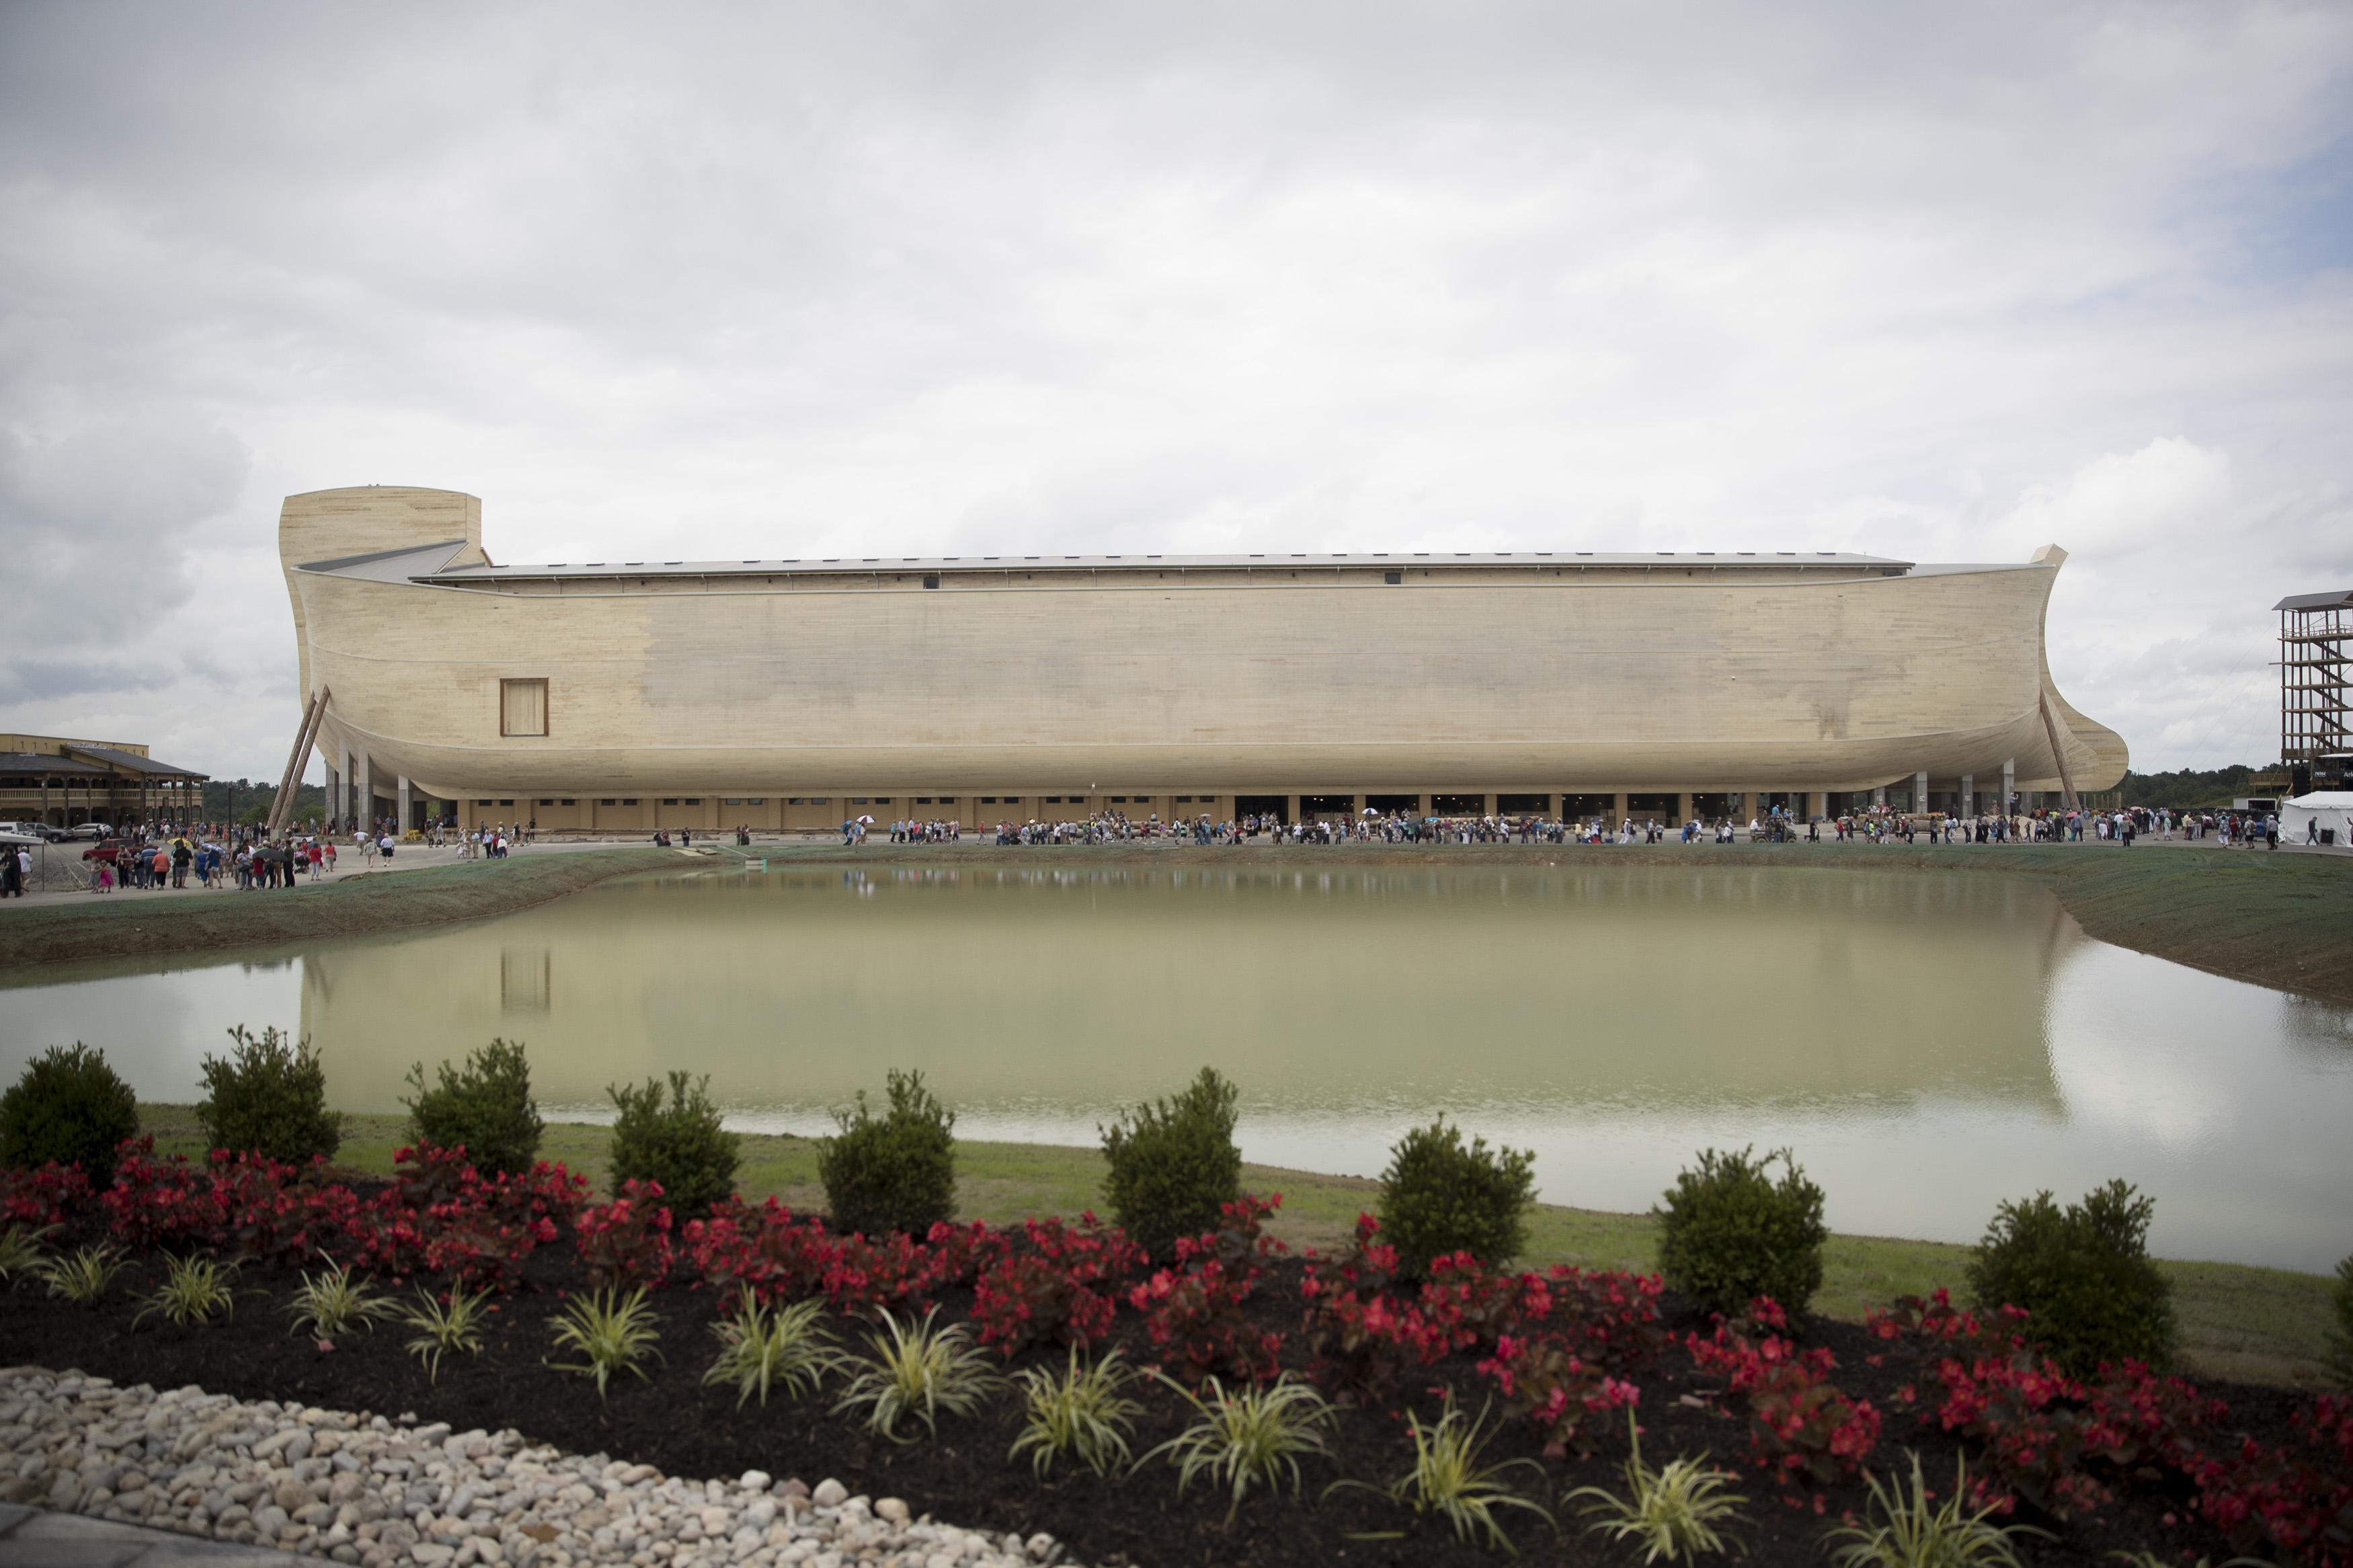 slate.com - Daniel Politi - Owners of Noah's Ark Replica Sue Insurers Over Rain Damage